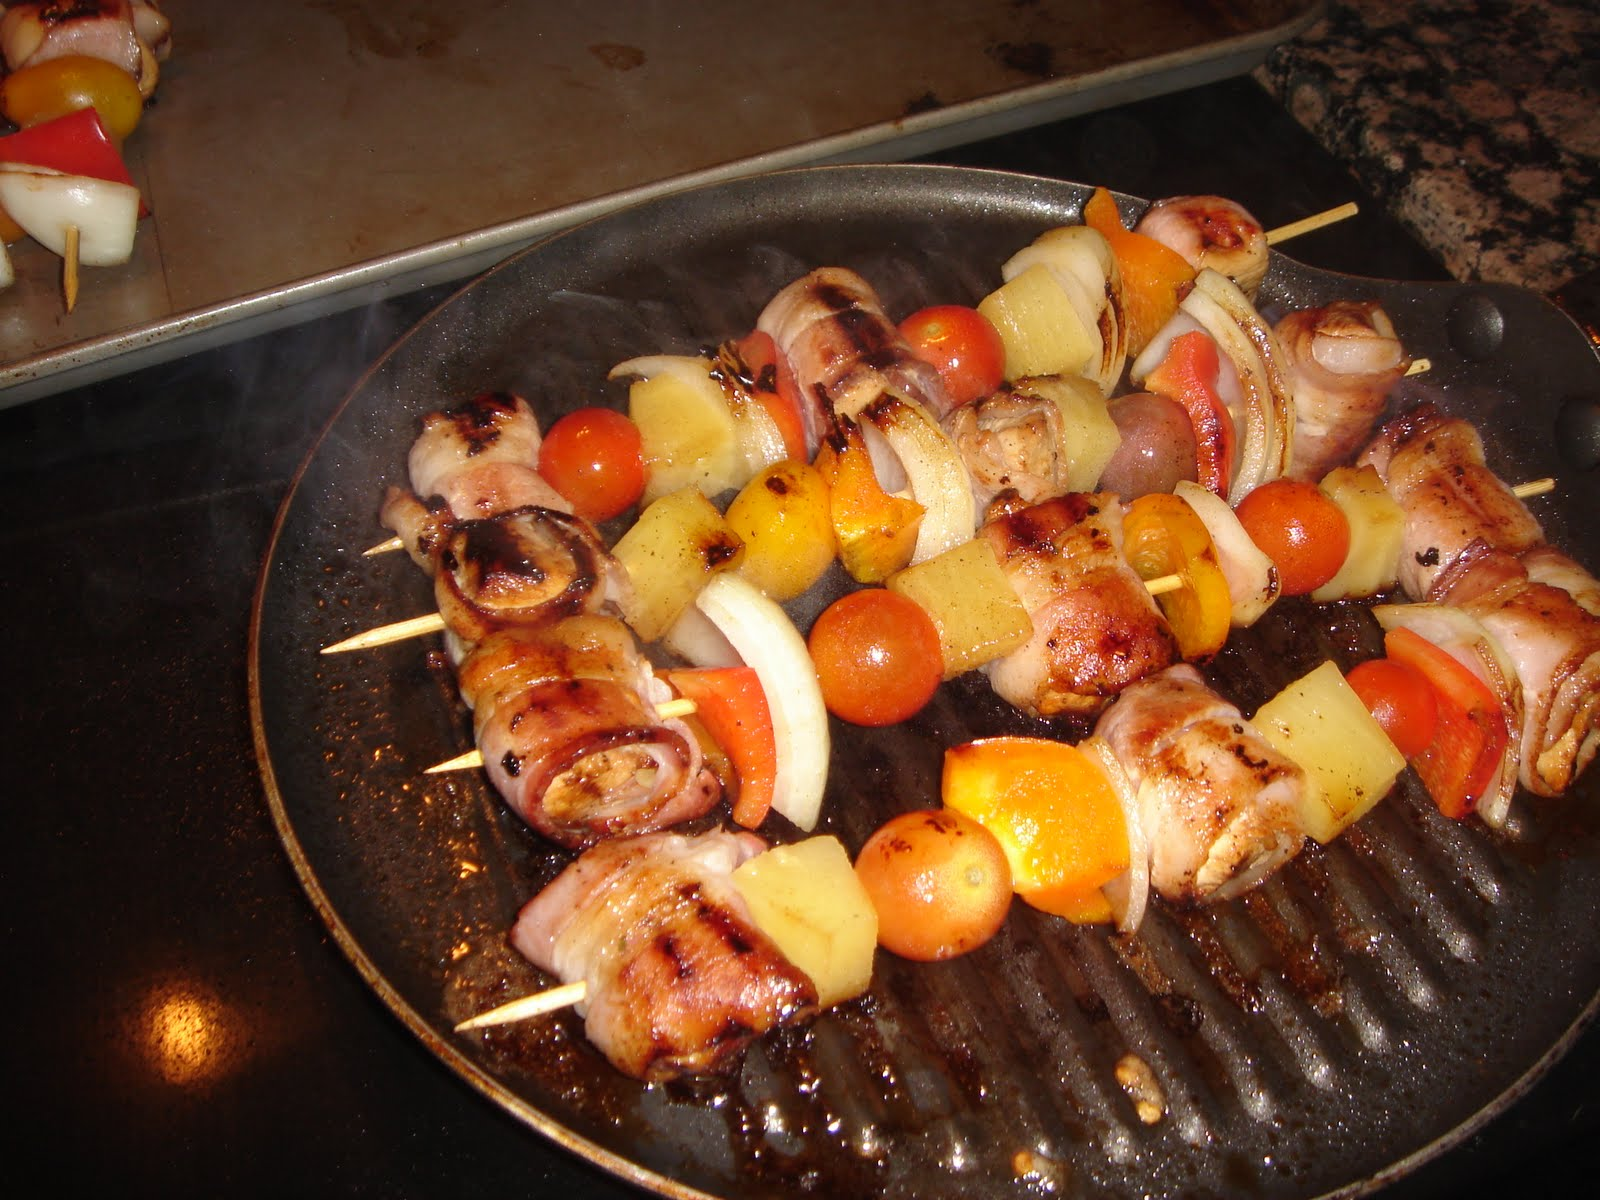 Peace, Love, and Baked Goods: Chicken and Bacon Shish Kabobs